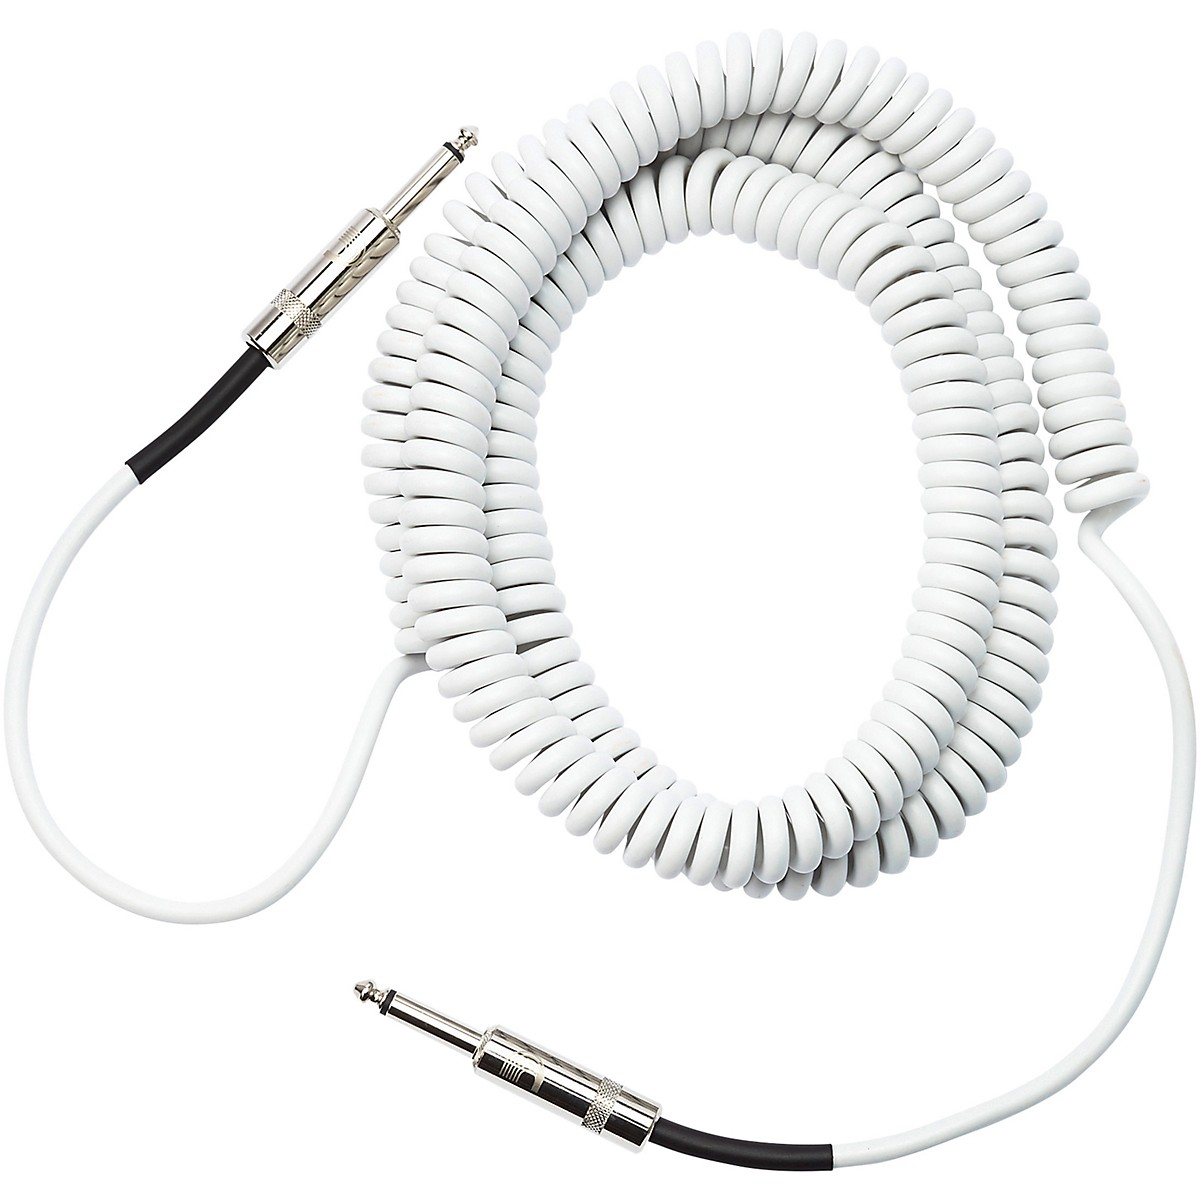 D'Addario Planet Waves Coiled Instrument Cable